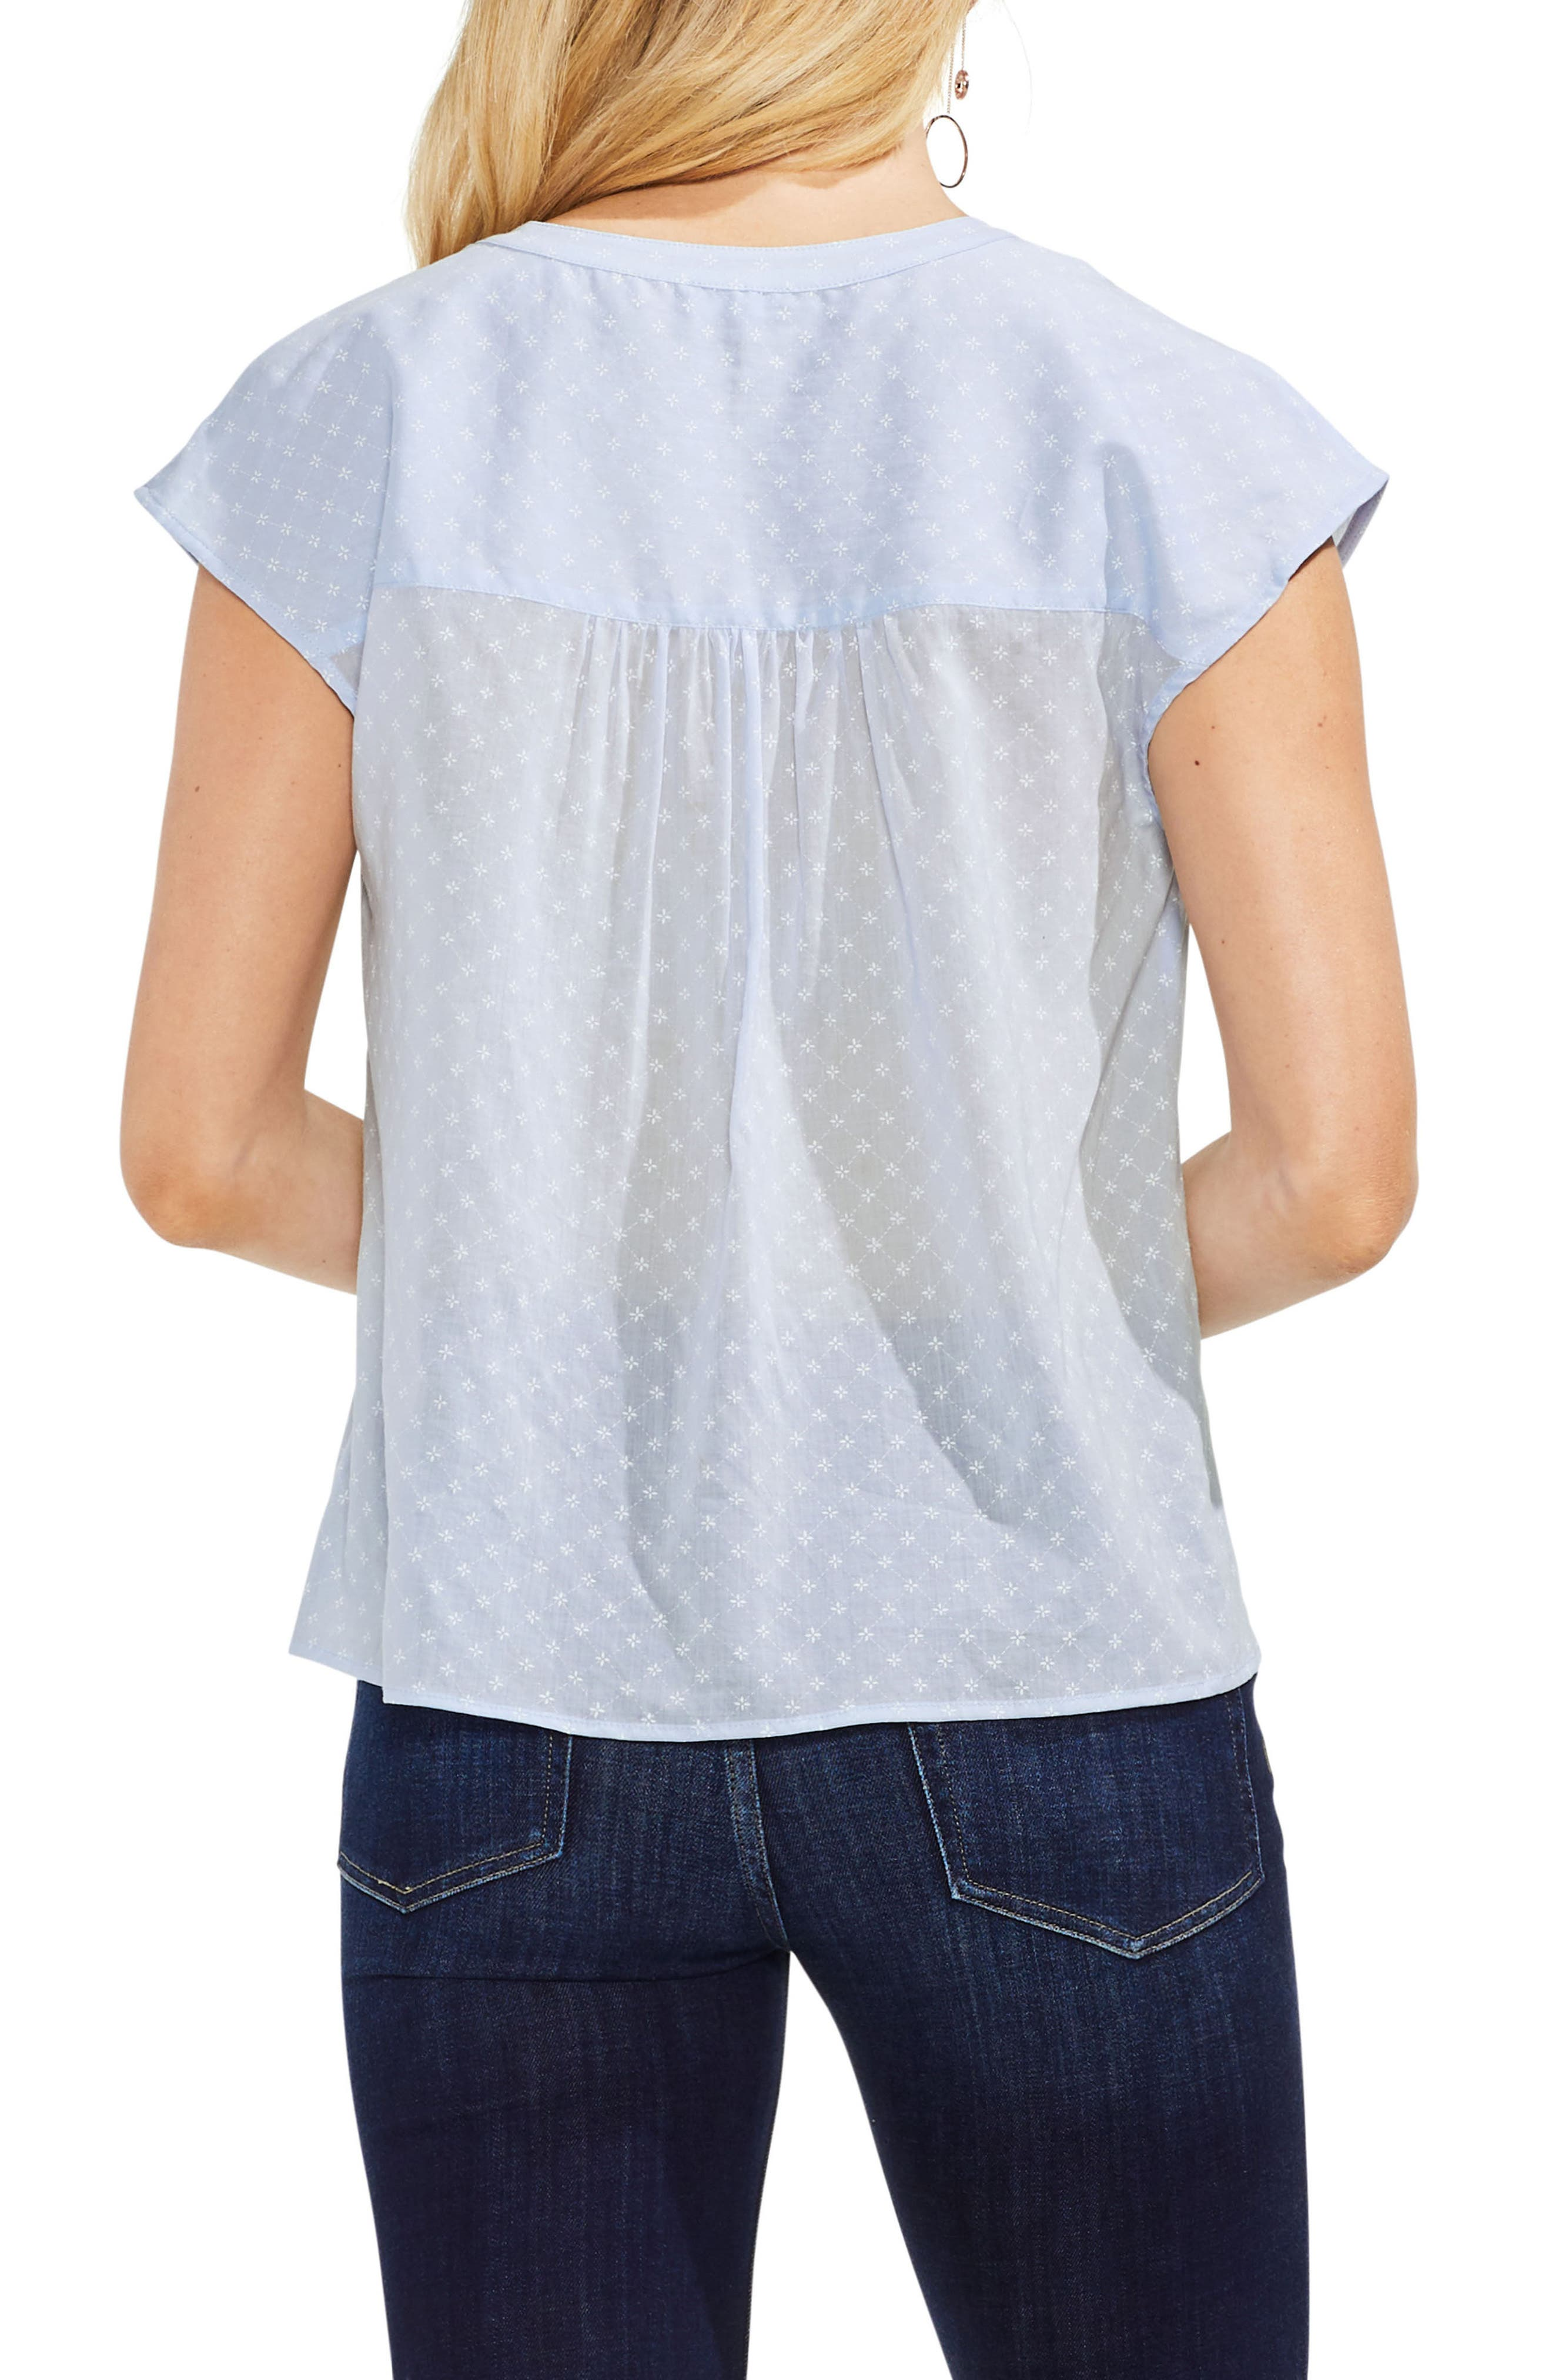 Floral Embroidered Top,                             Alternate thumbnail 2, color,                             Dew Blue